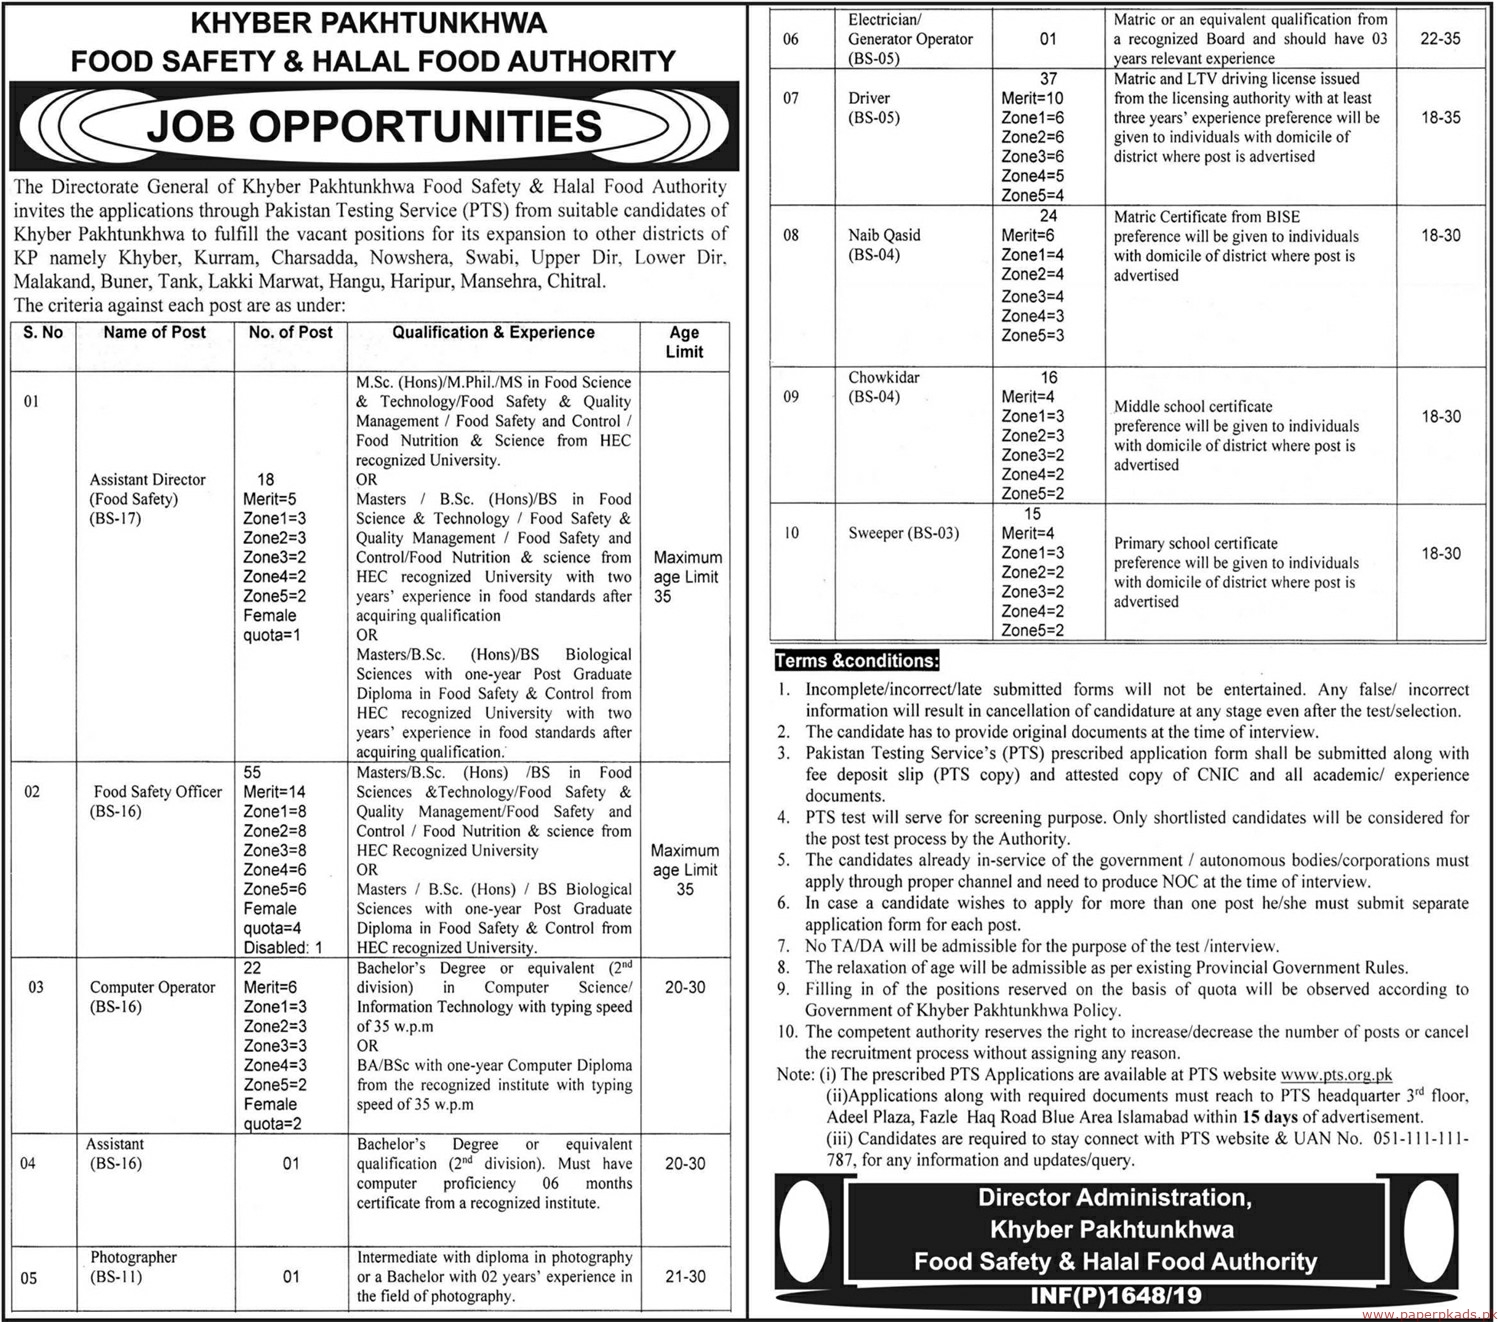 Khyber Pakhtunkhwa Food Safety & Halal Food Authority Jobs 2019 Latest